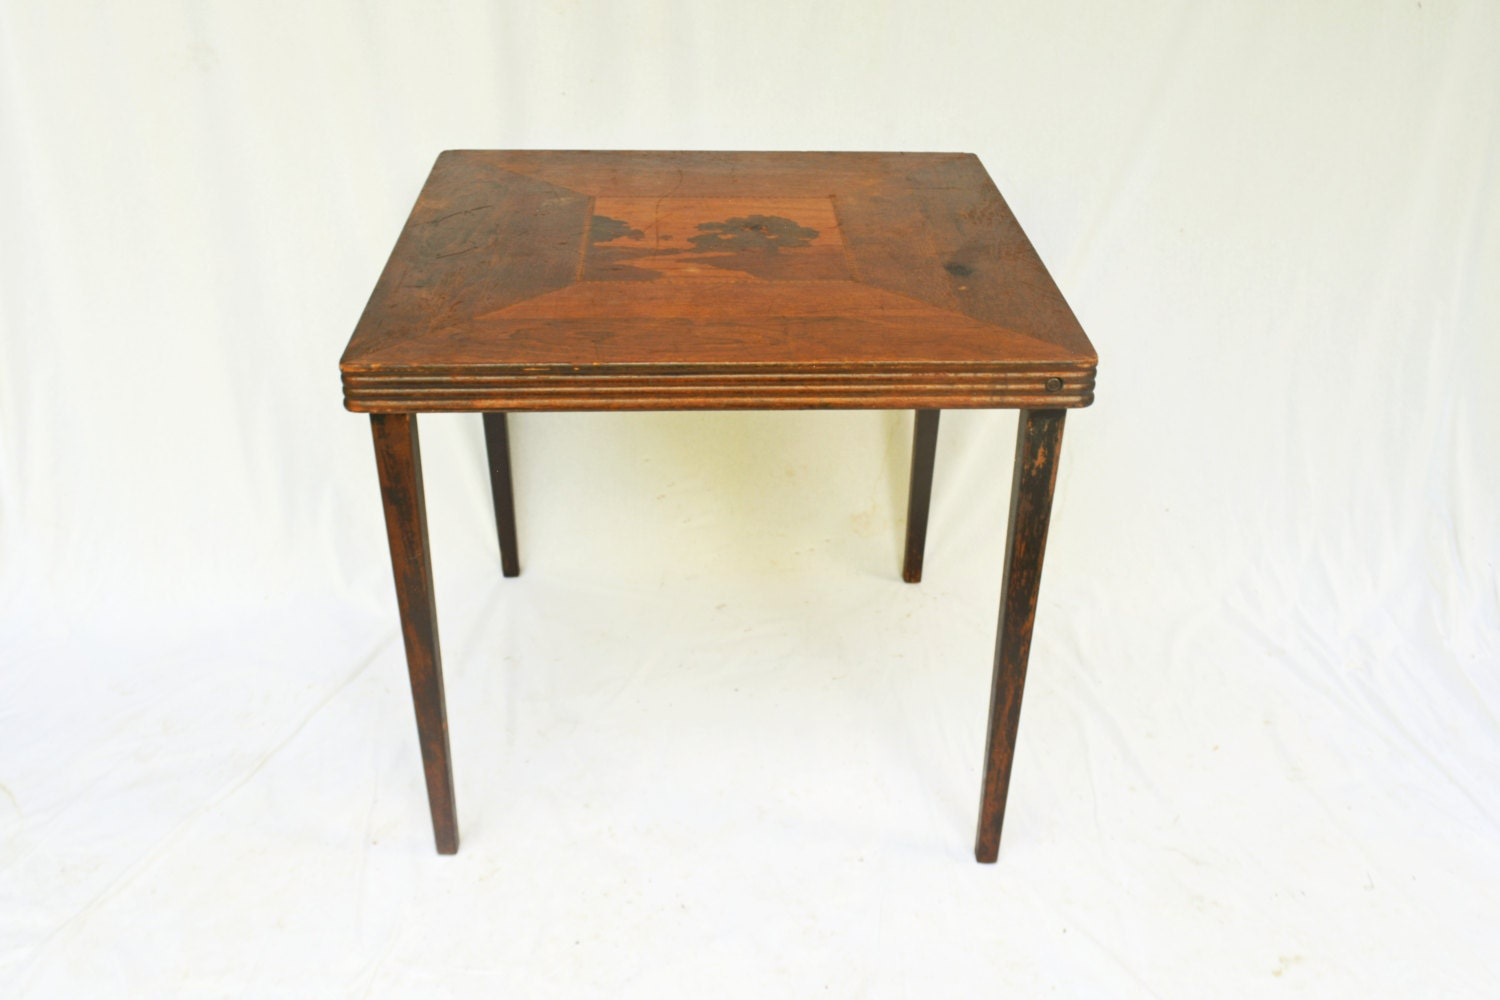 Vintage Wooden Folding Table Inlaid Wood Table Vintage Card